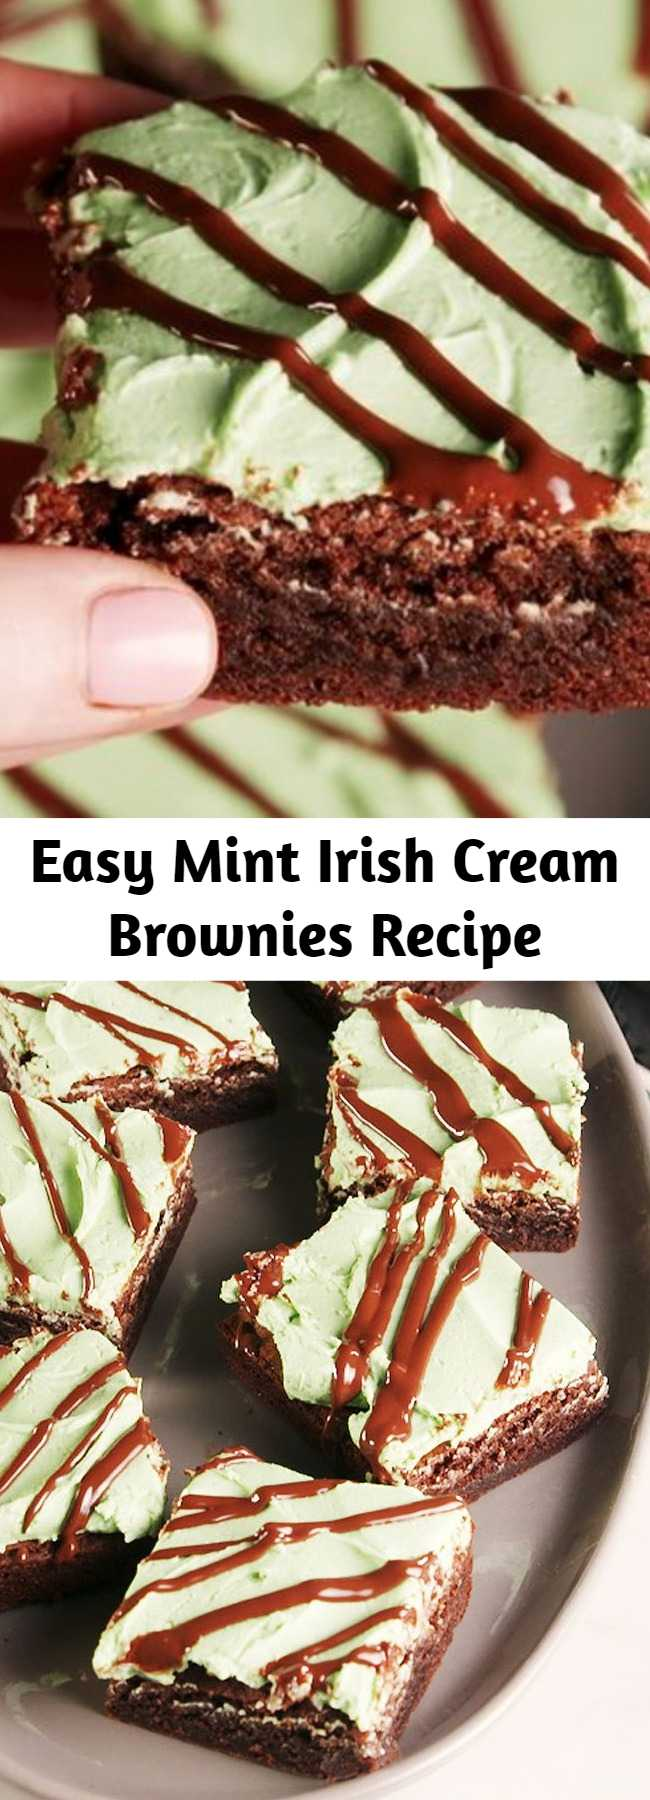 Easy Mint Irish Cream Brownies Recipe - Baileys fans will be OBSESSED with these Mint Irish Cream Brownies. #recipe #easy #easyrecipes #brownies #chocolate #bialeys #baking #mint #dessert #dessertrecipes